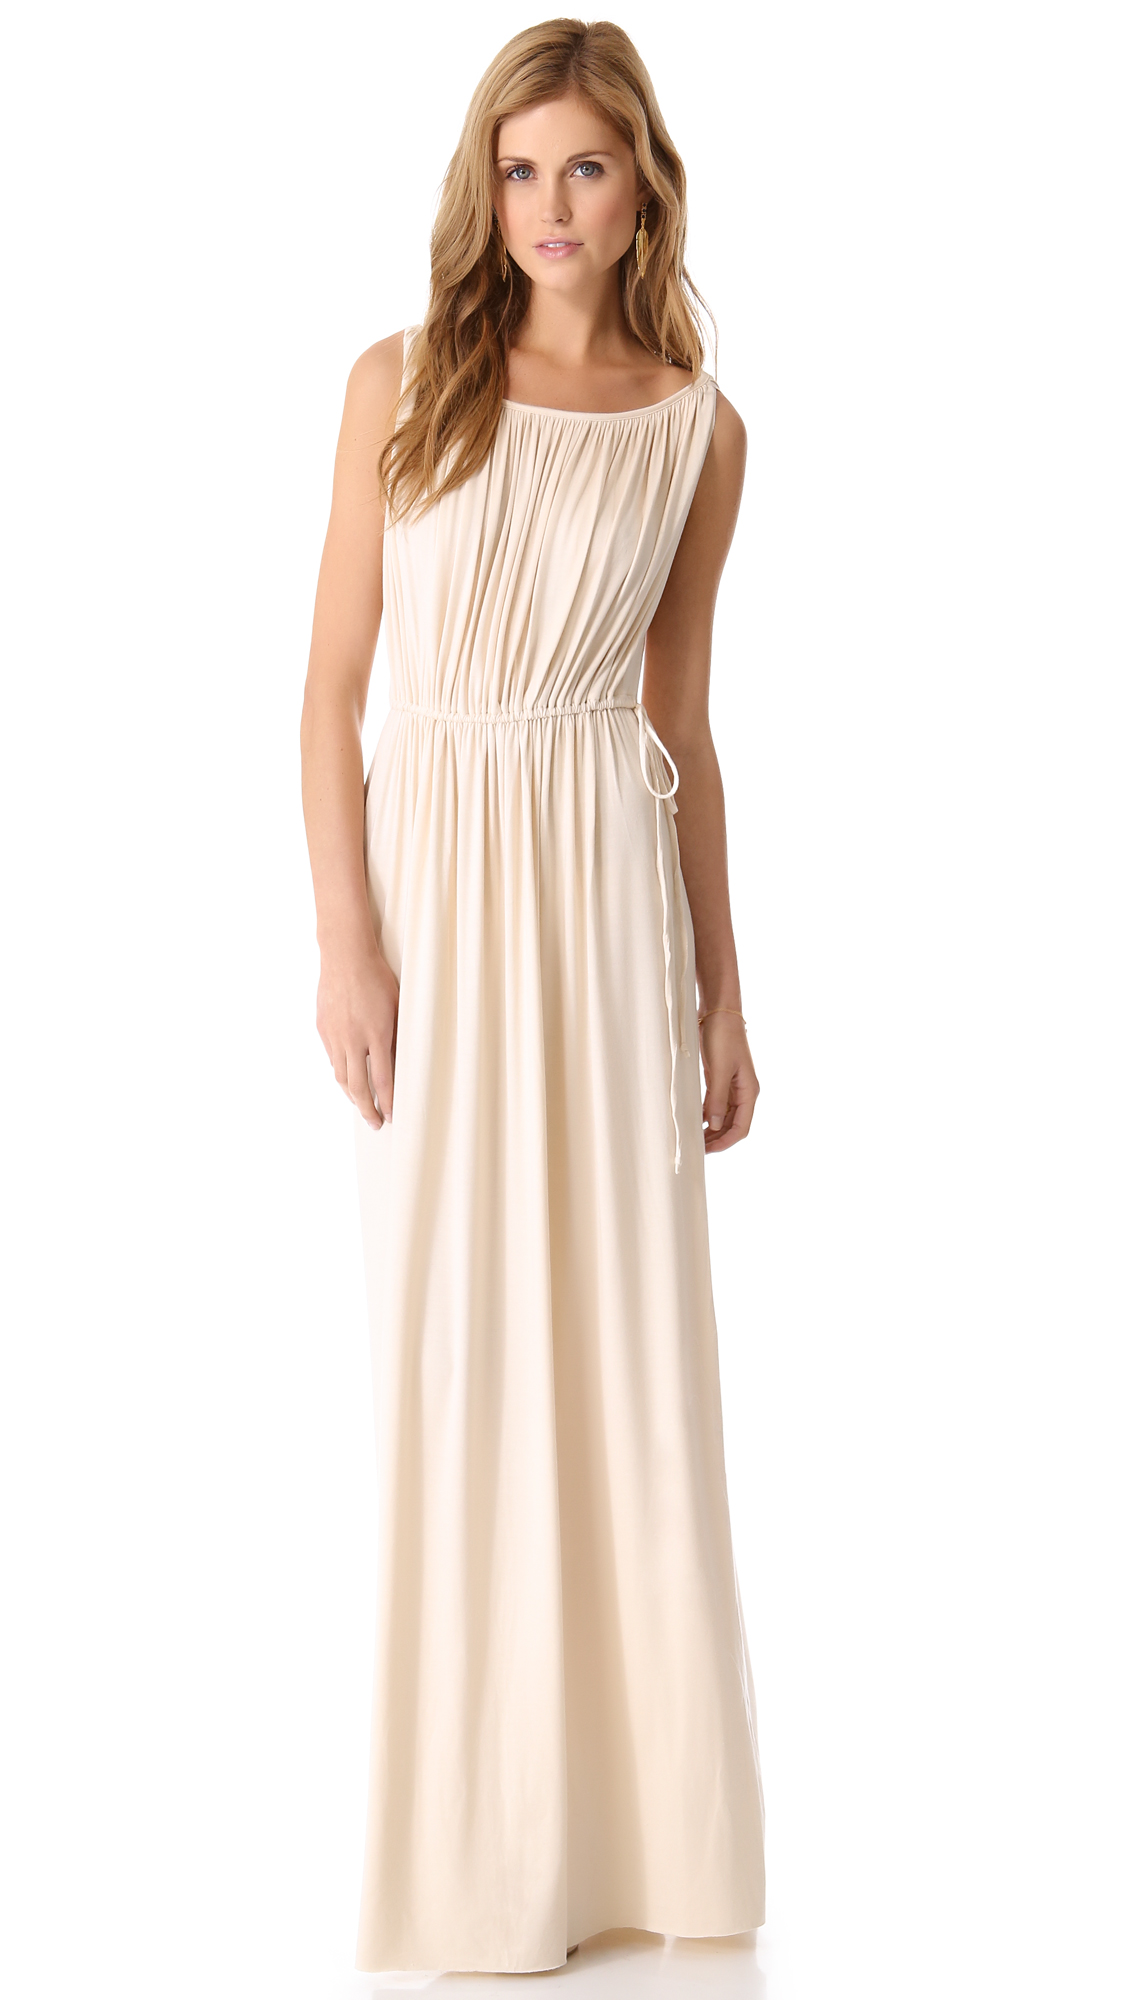 Rachel pally grecian long dress in beige cream lyst